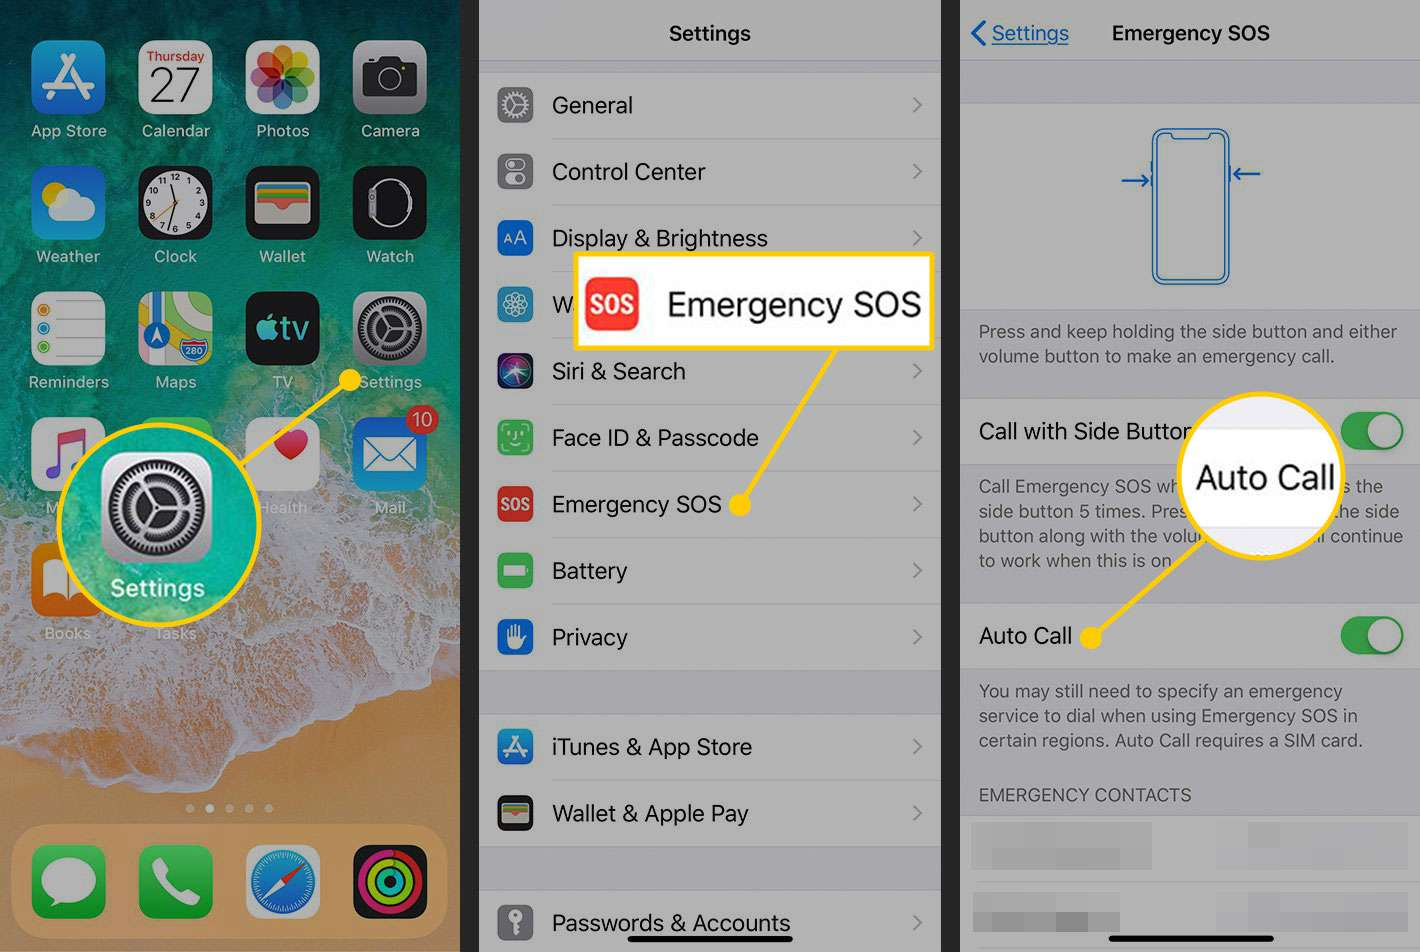 Turning off Emergency SOS on an iPhone